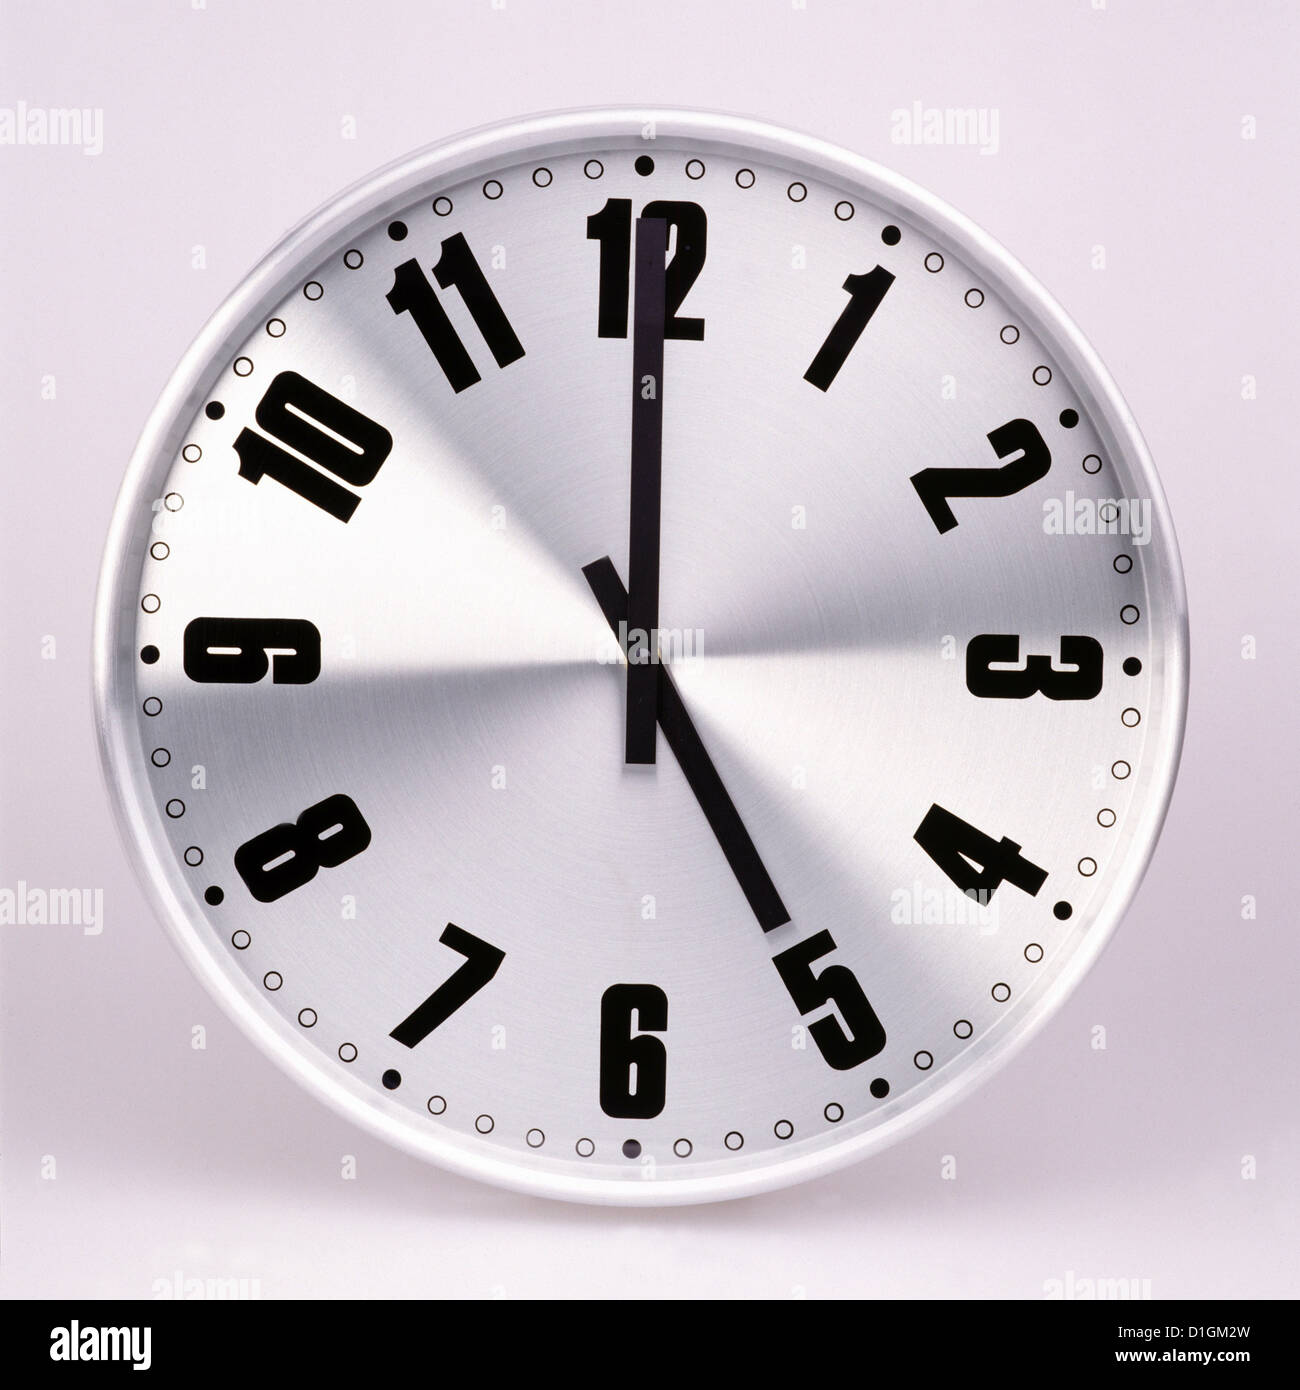 Office wall clock - Stock Image